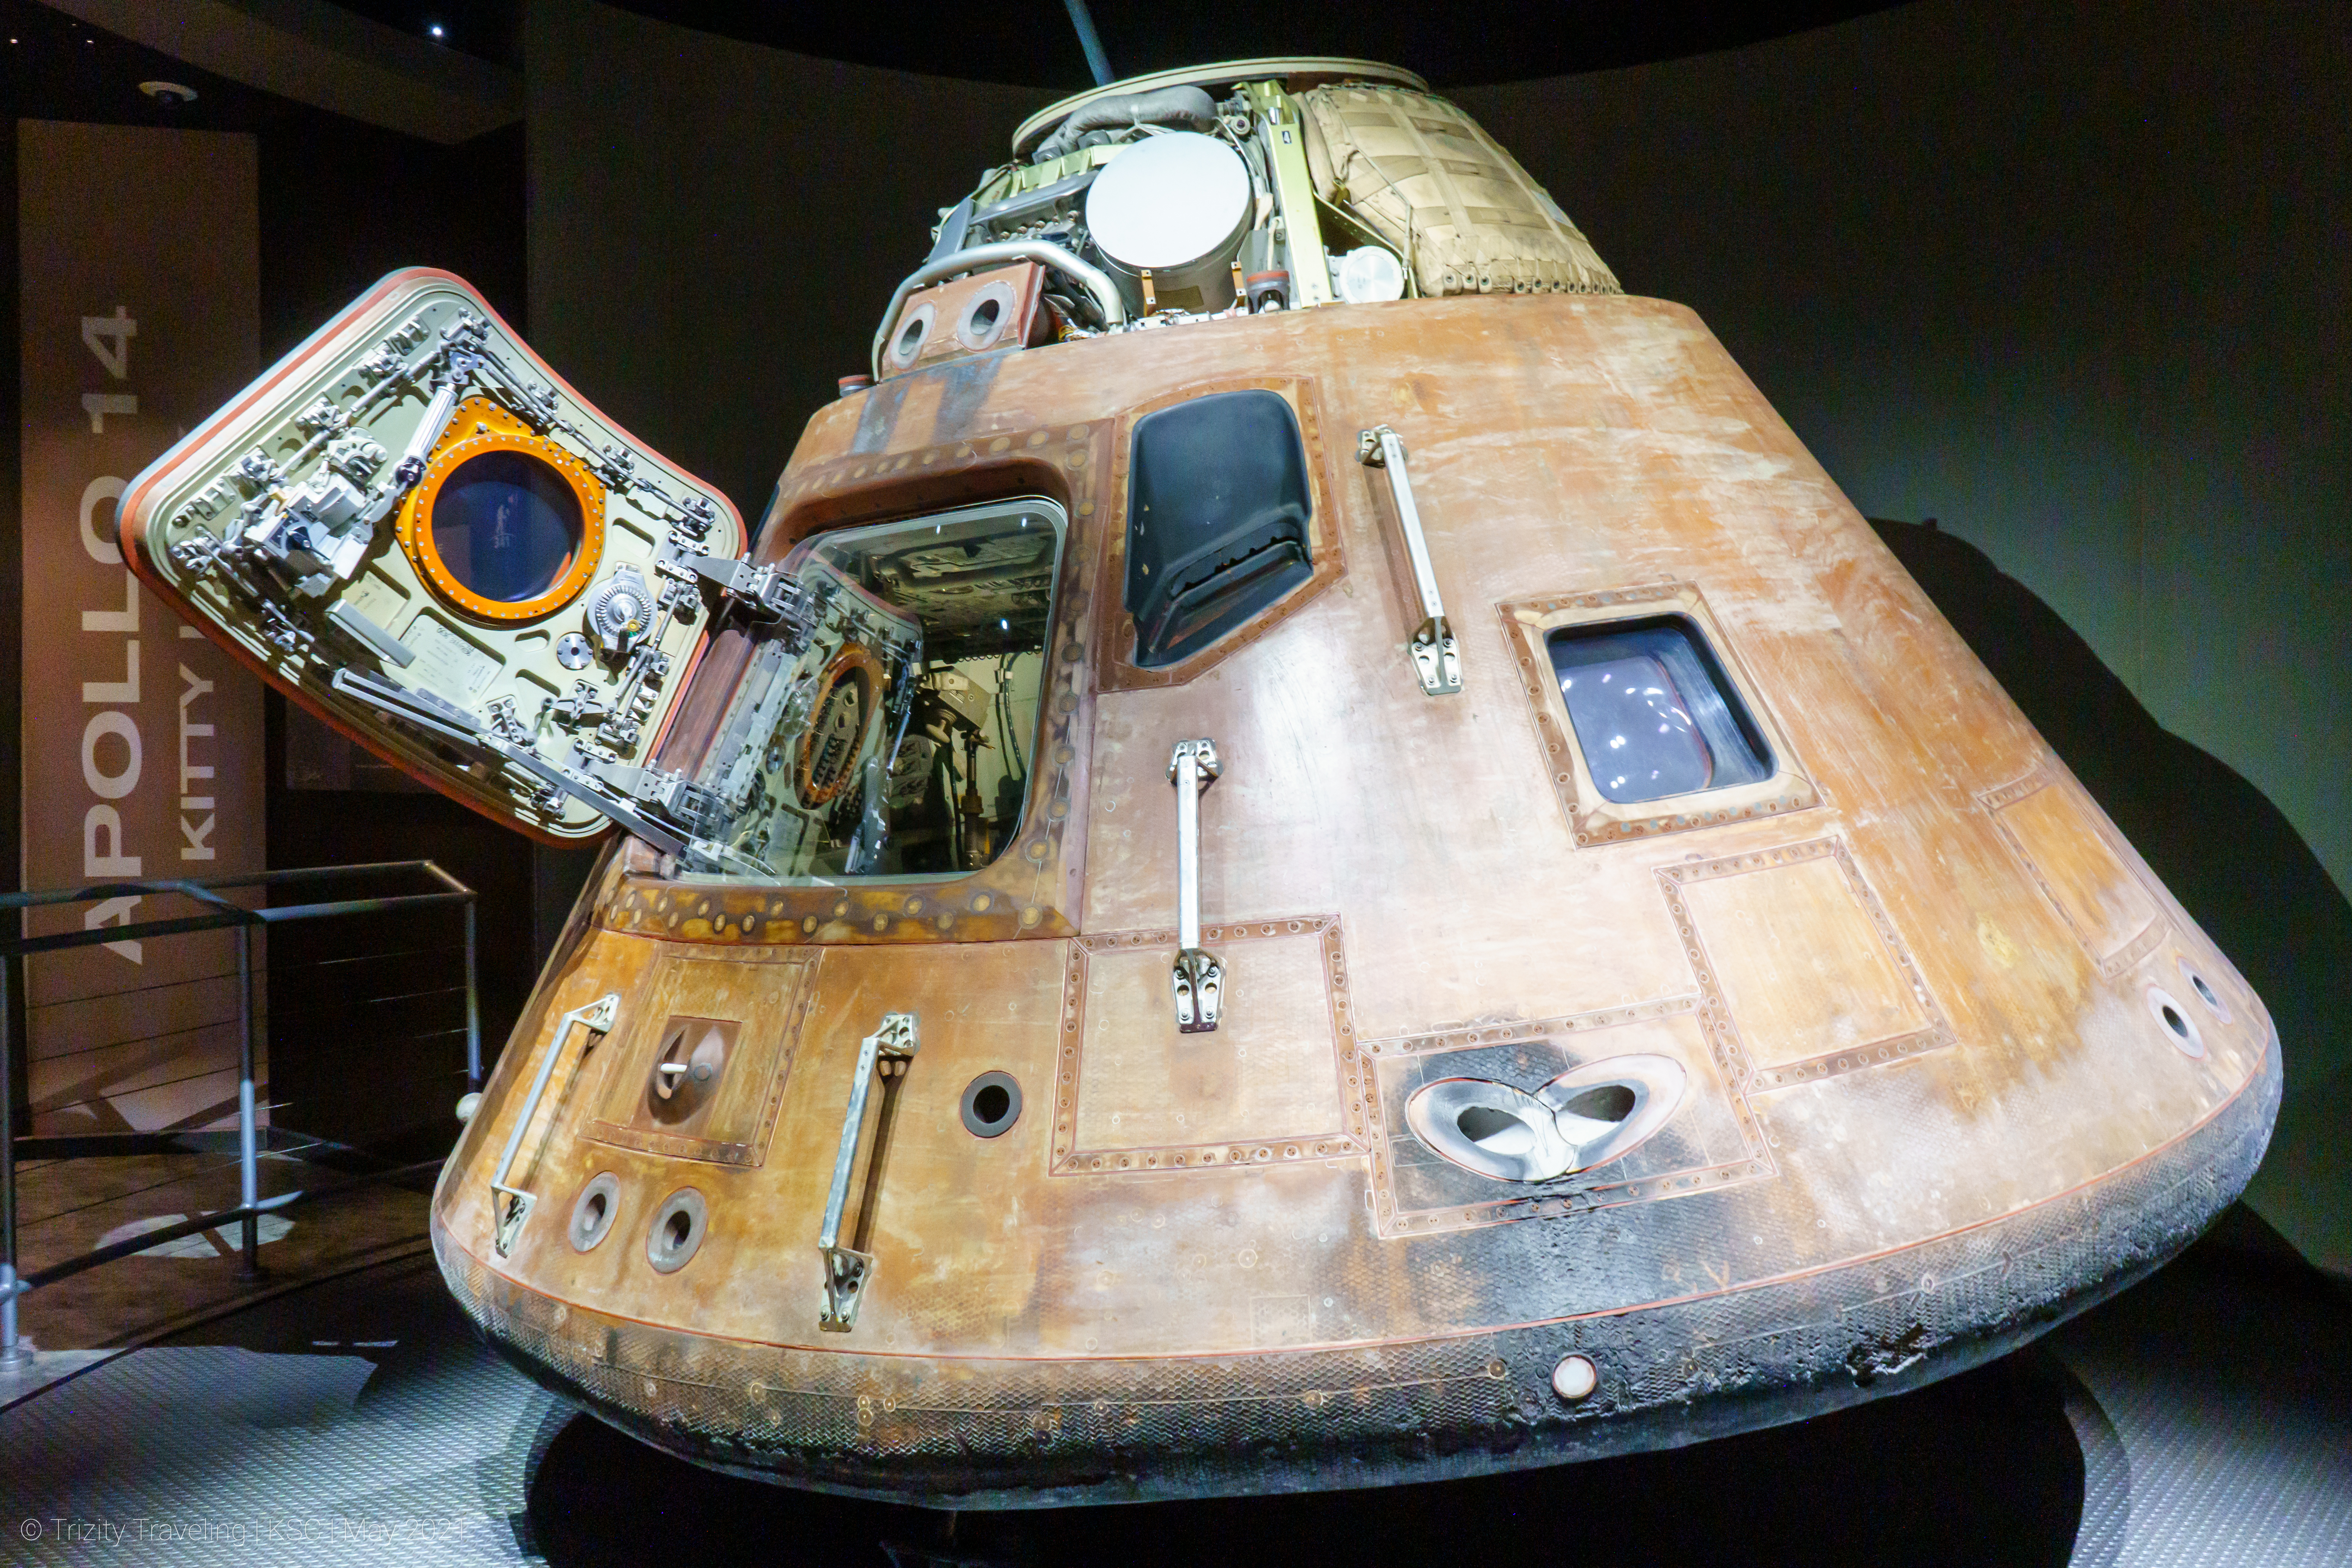 Return to the Kennedy Space Center